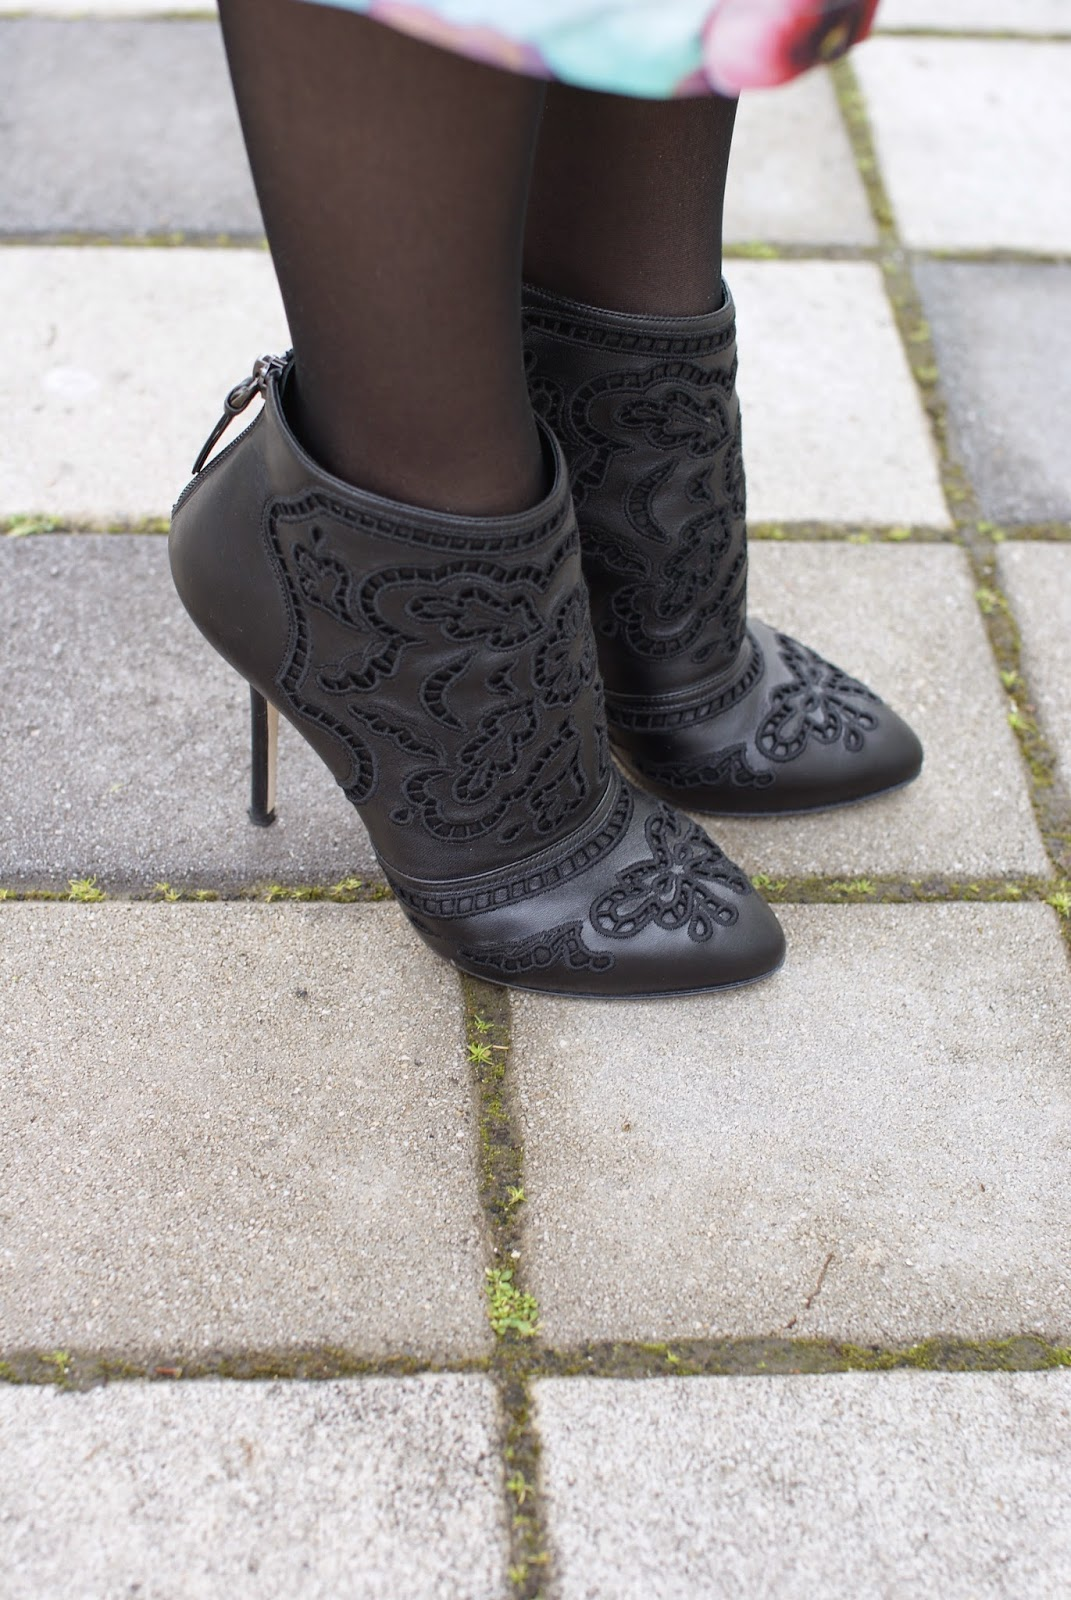 Dolce & Gabbana Coco boots, Fashion and Cookies fashion blog, fashion blogger